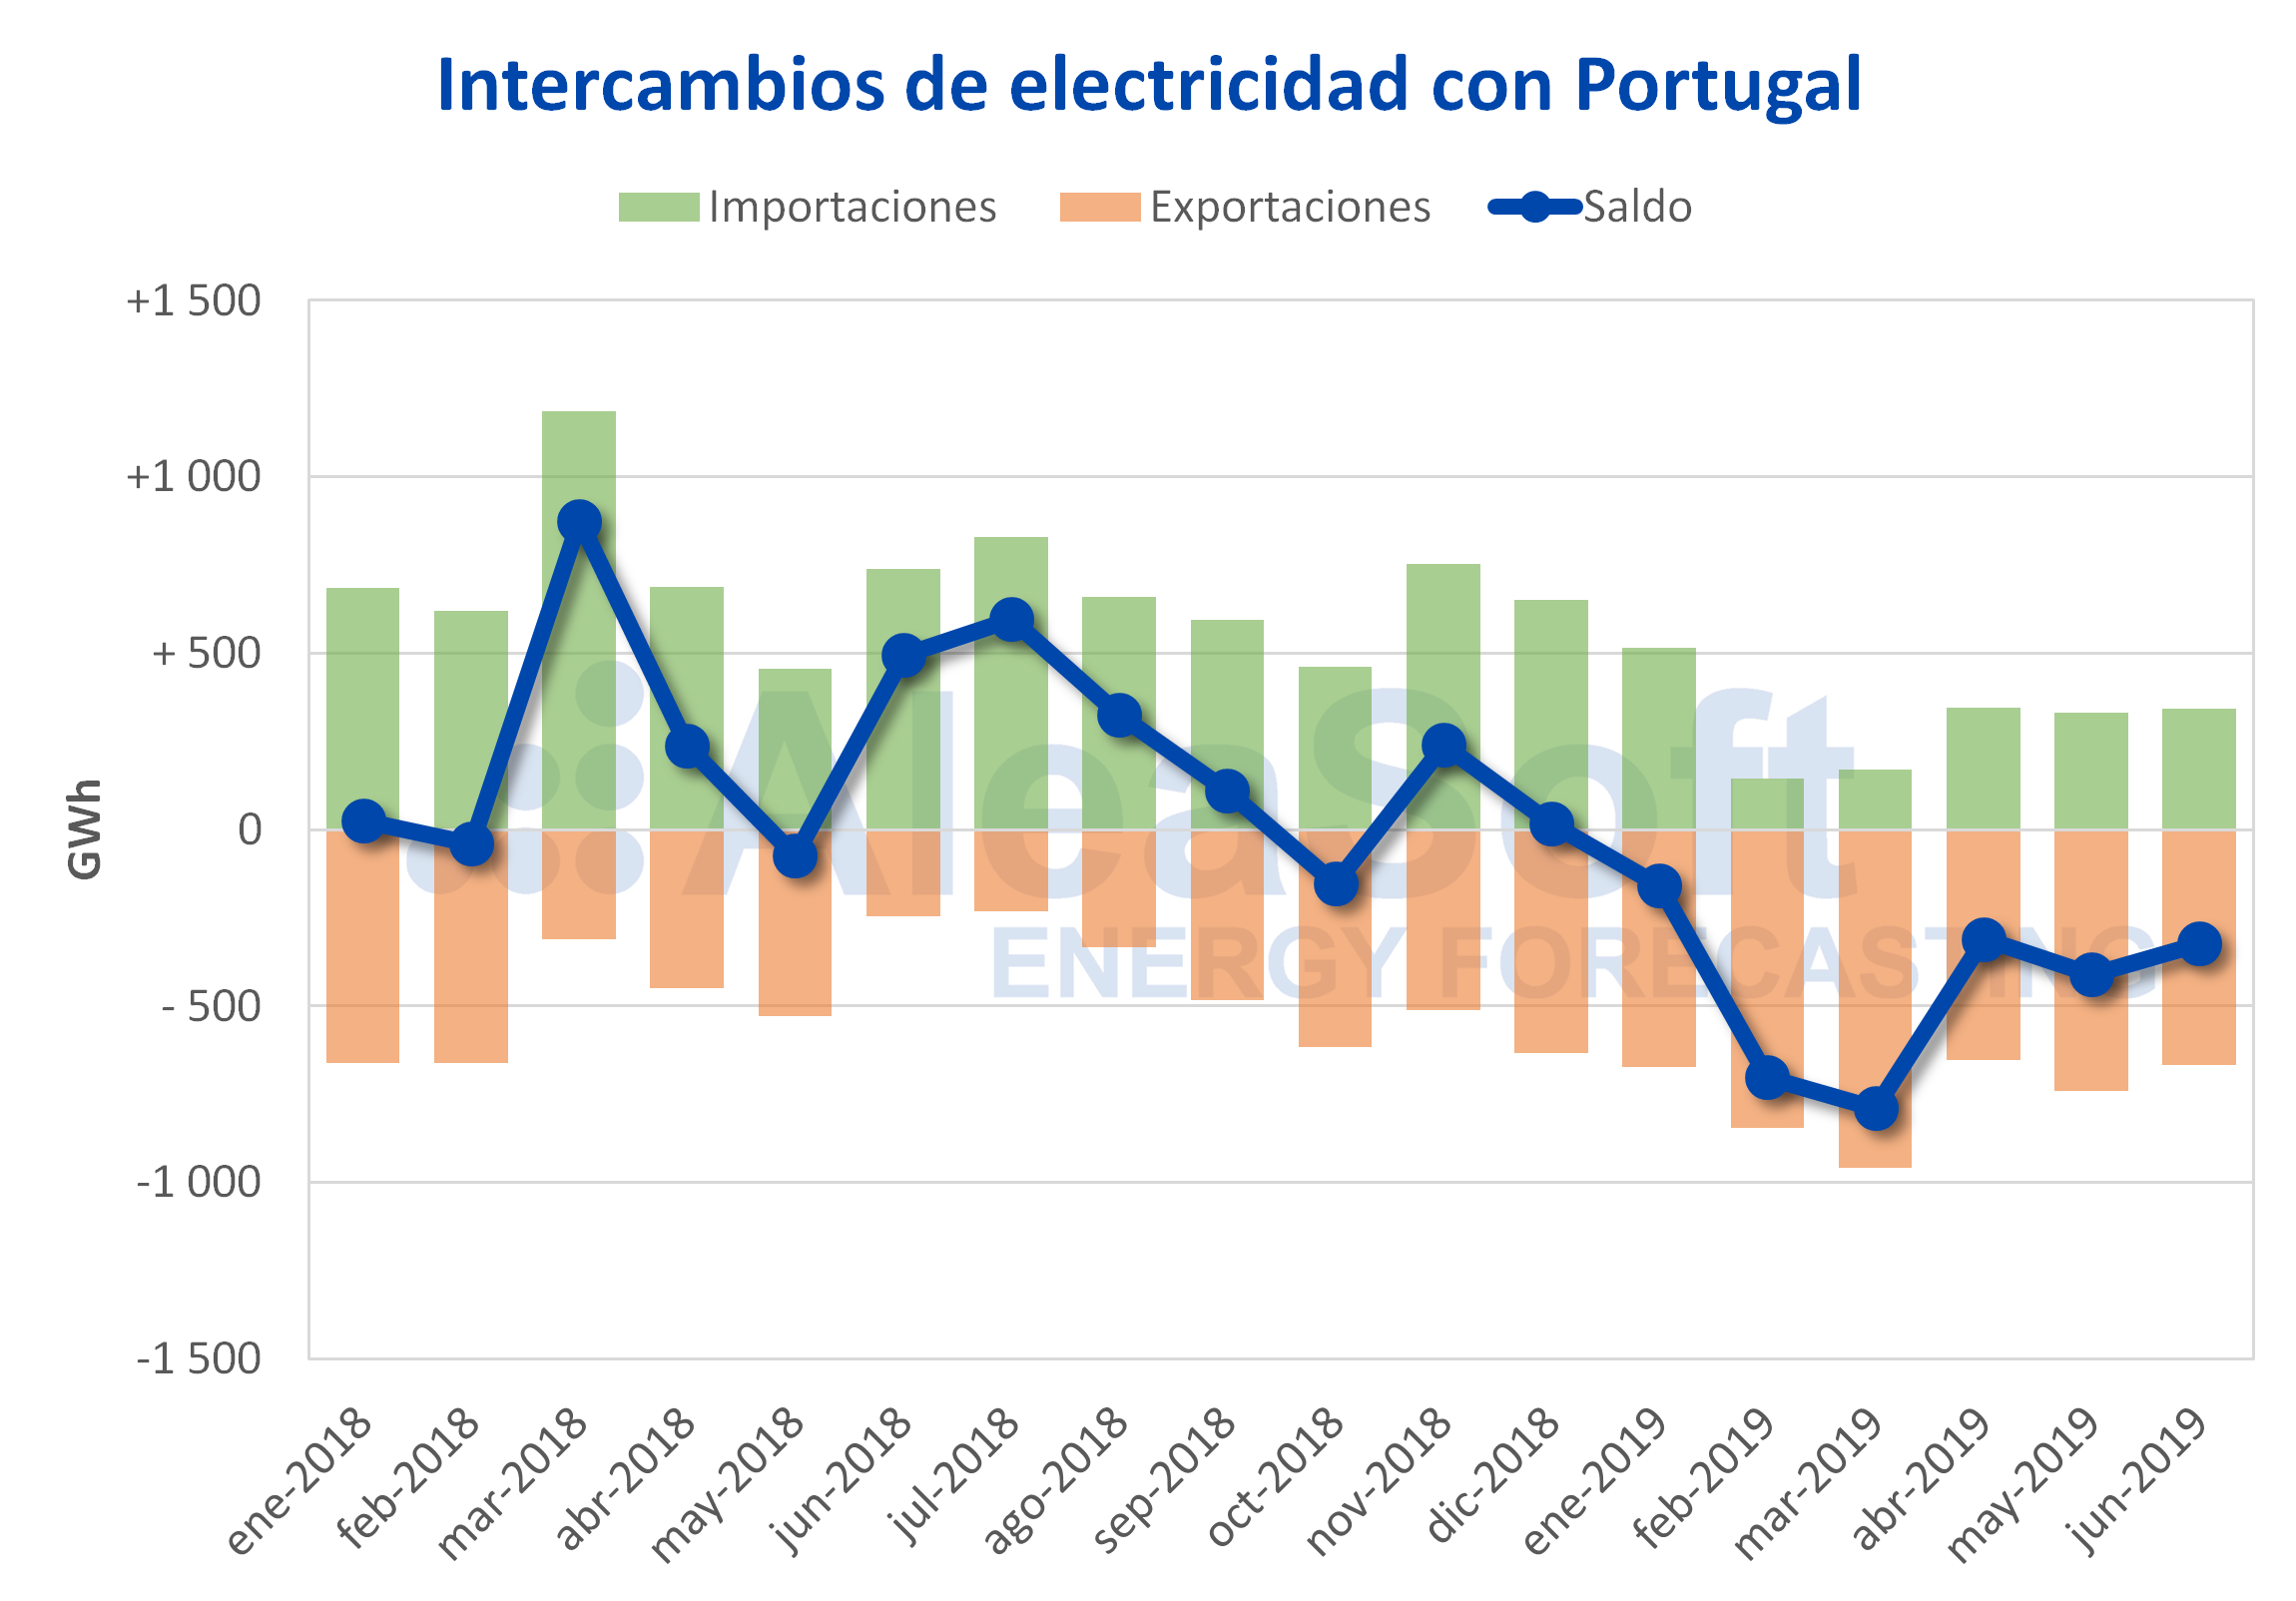 AleaSoft - Intercambios internacionales electricidad Portugal